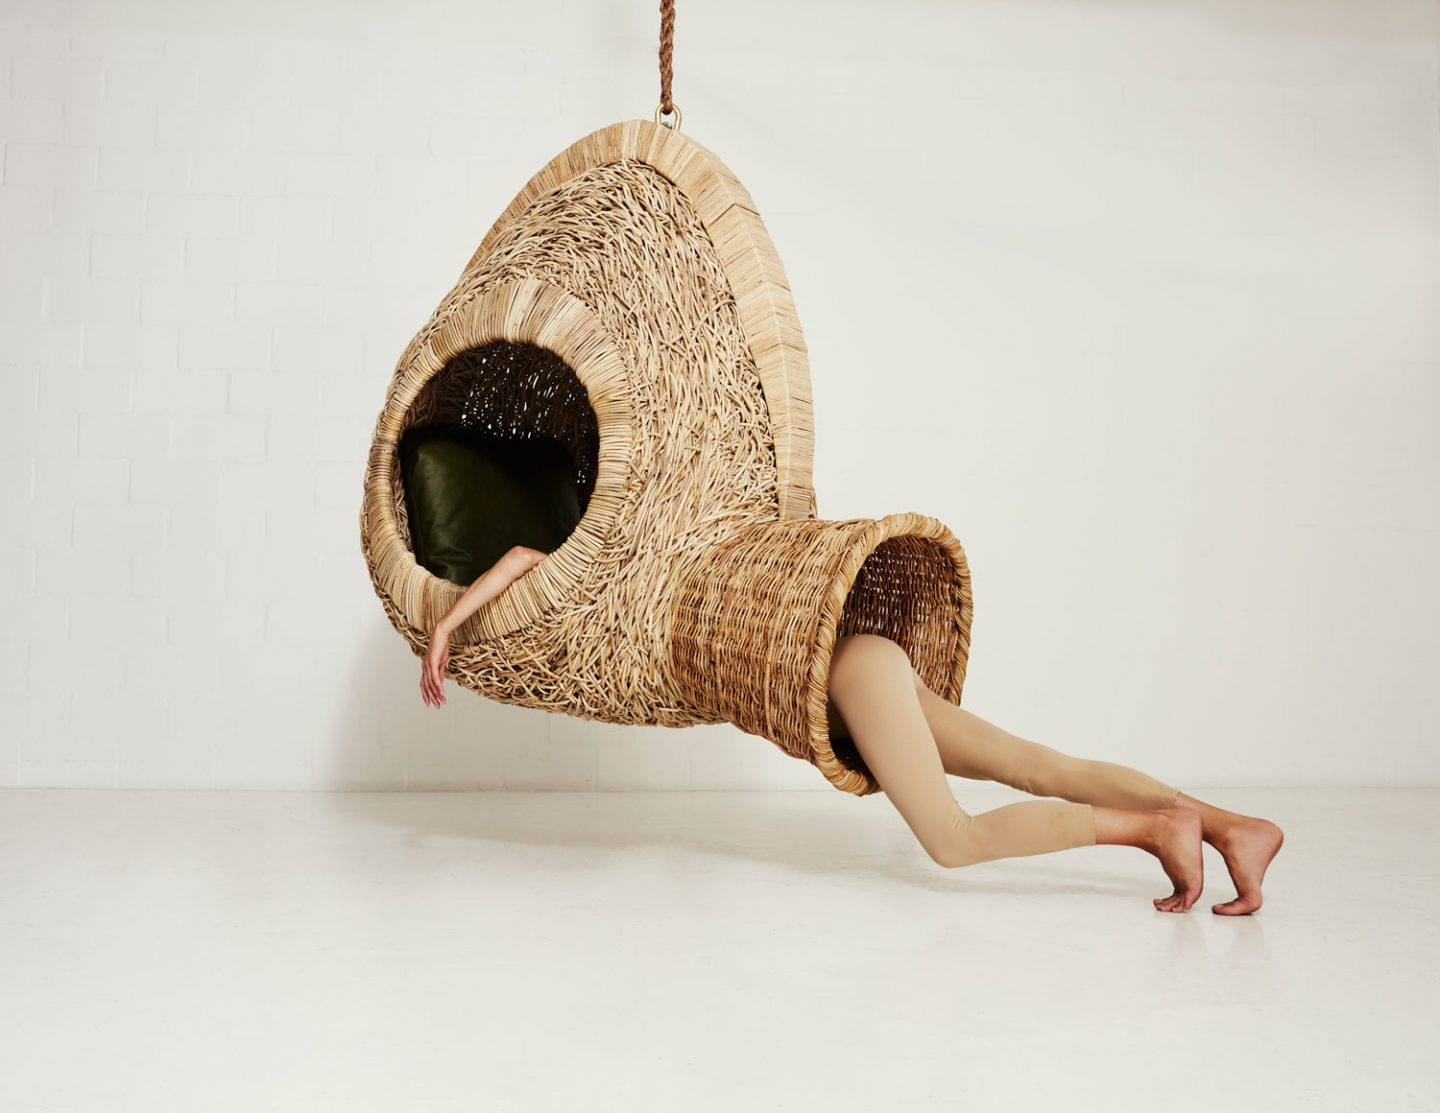 ignant_design_Suspended-Sofas-Cocoons-and-Nests-by-Porky-Hefer_002